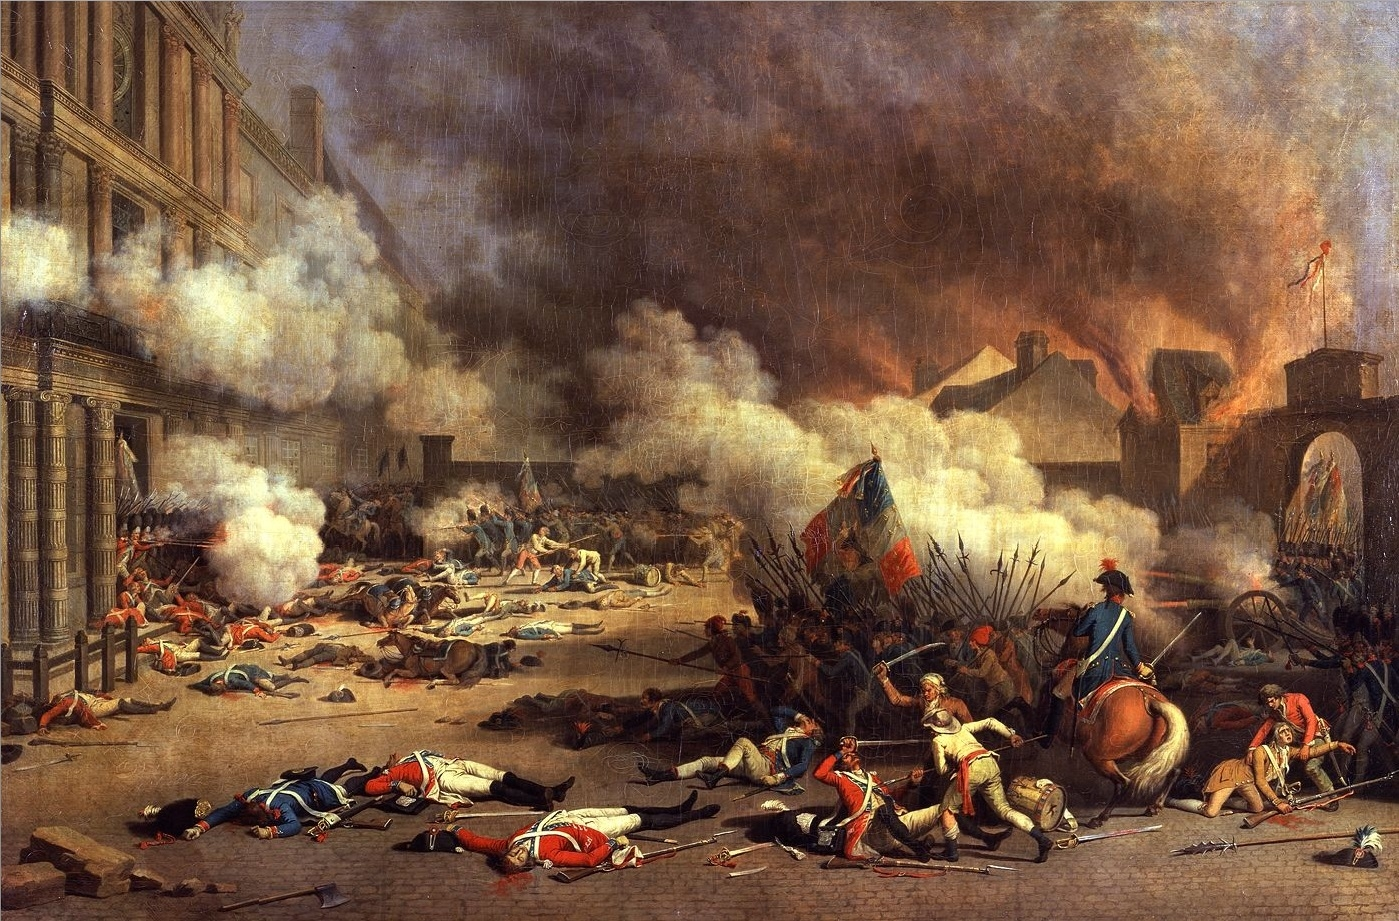 an analysis of the significance of the french revolution and the napoleonic wars to modernity The french revolution and napoleonic wars and the french revolution and their enduring effects worldwide on the and its continuing significance to other.